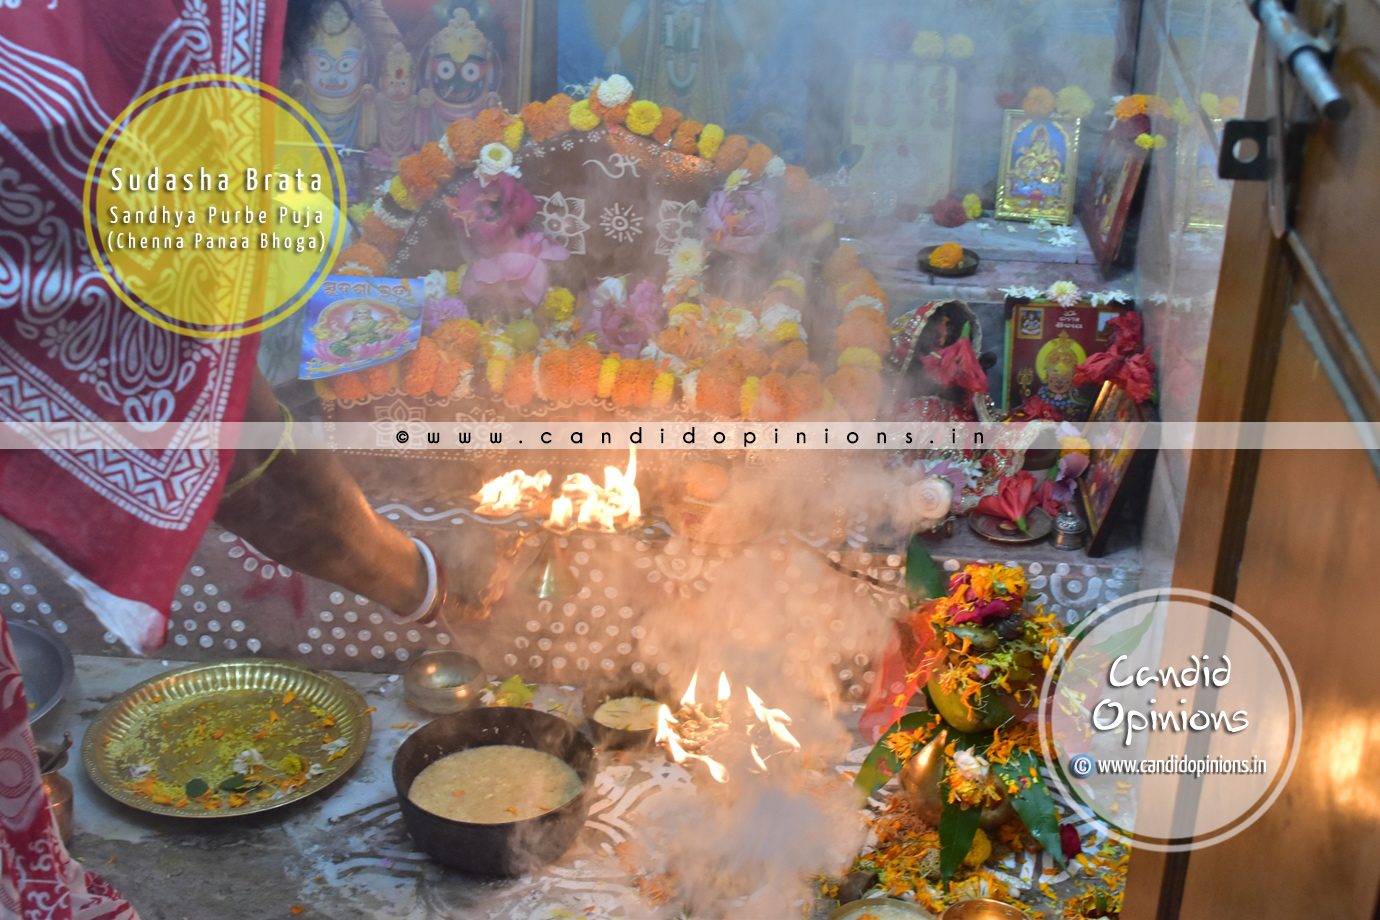 Chenna Panaa offered to Goddess Laxmi before evening